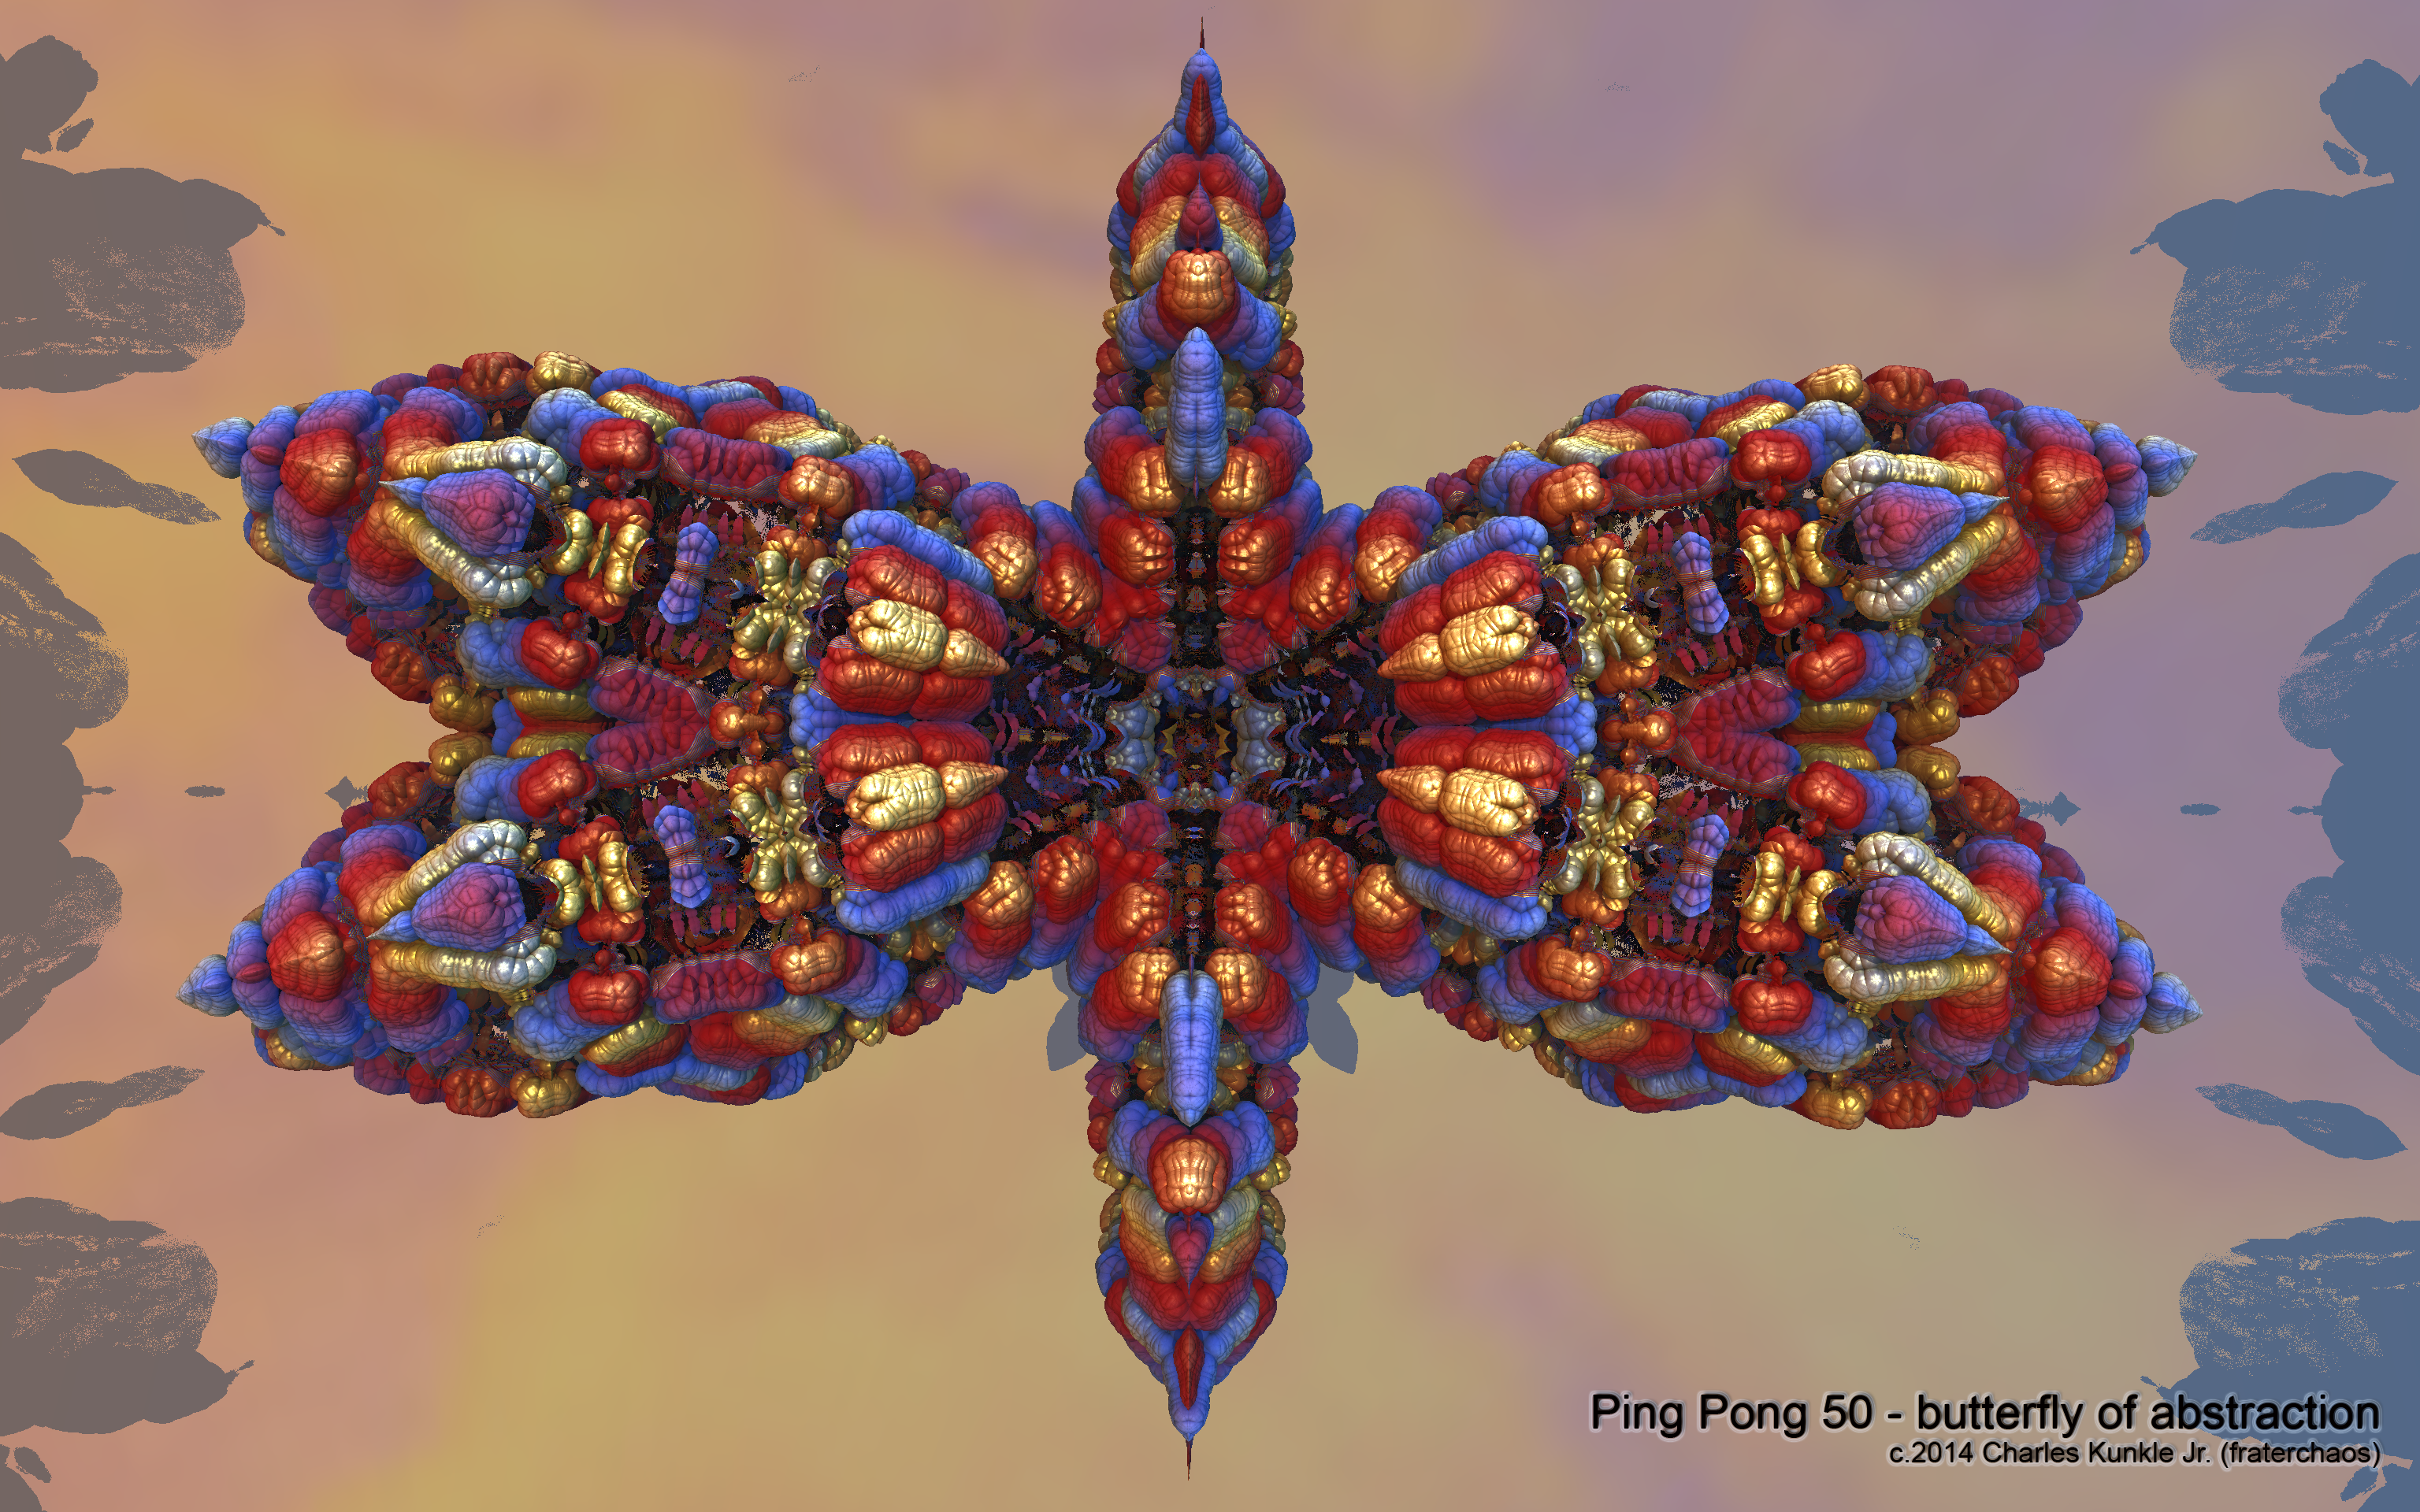 Ping Pong 50 - butterfly of abstraction by fraterchaos